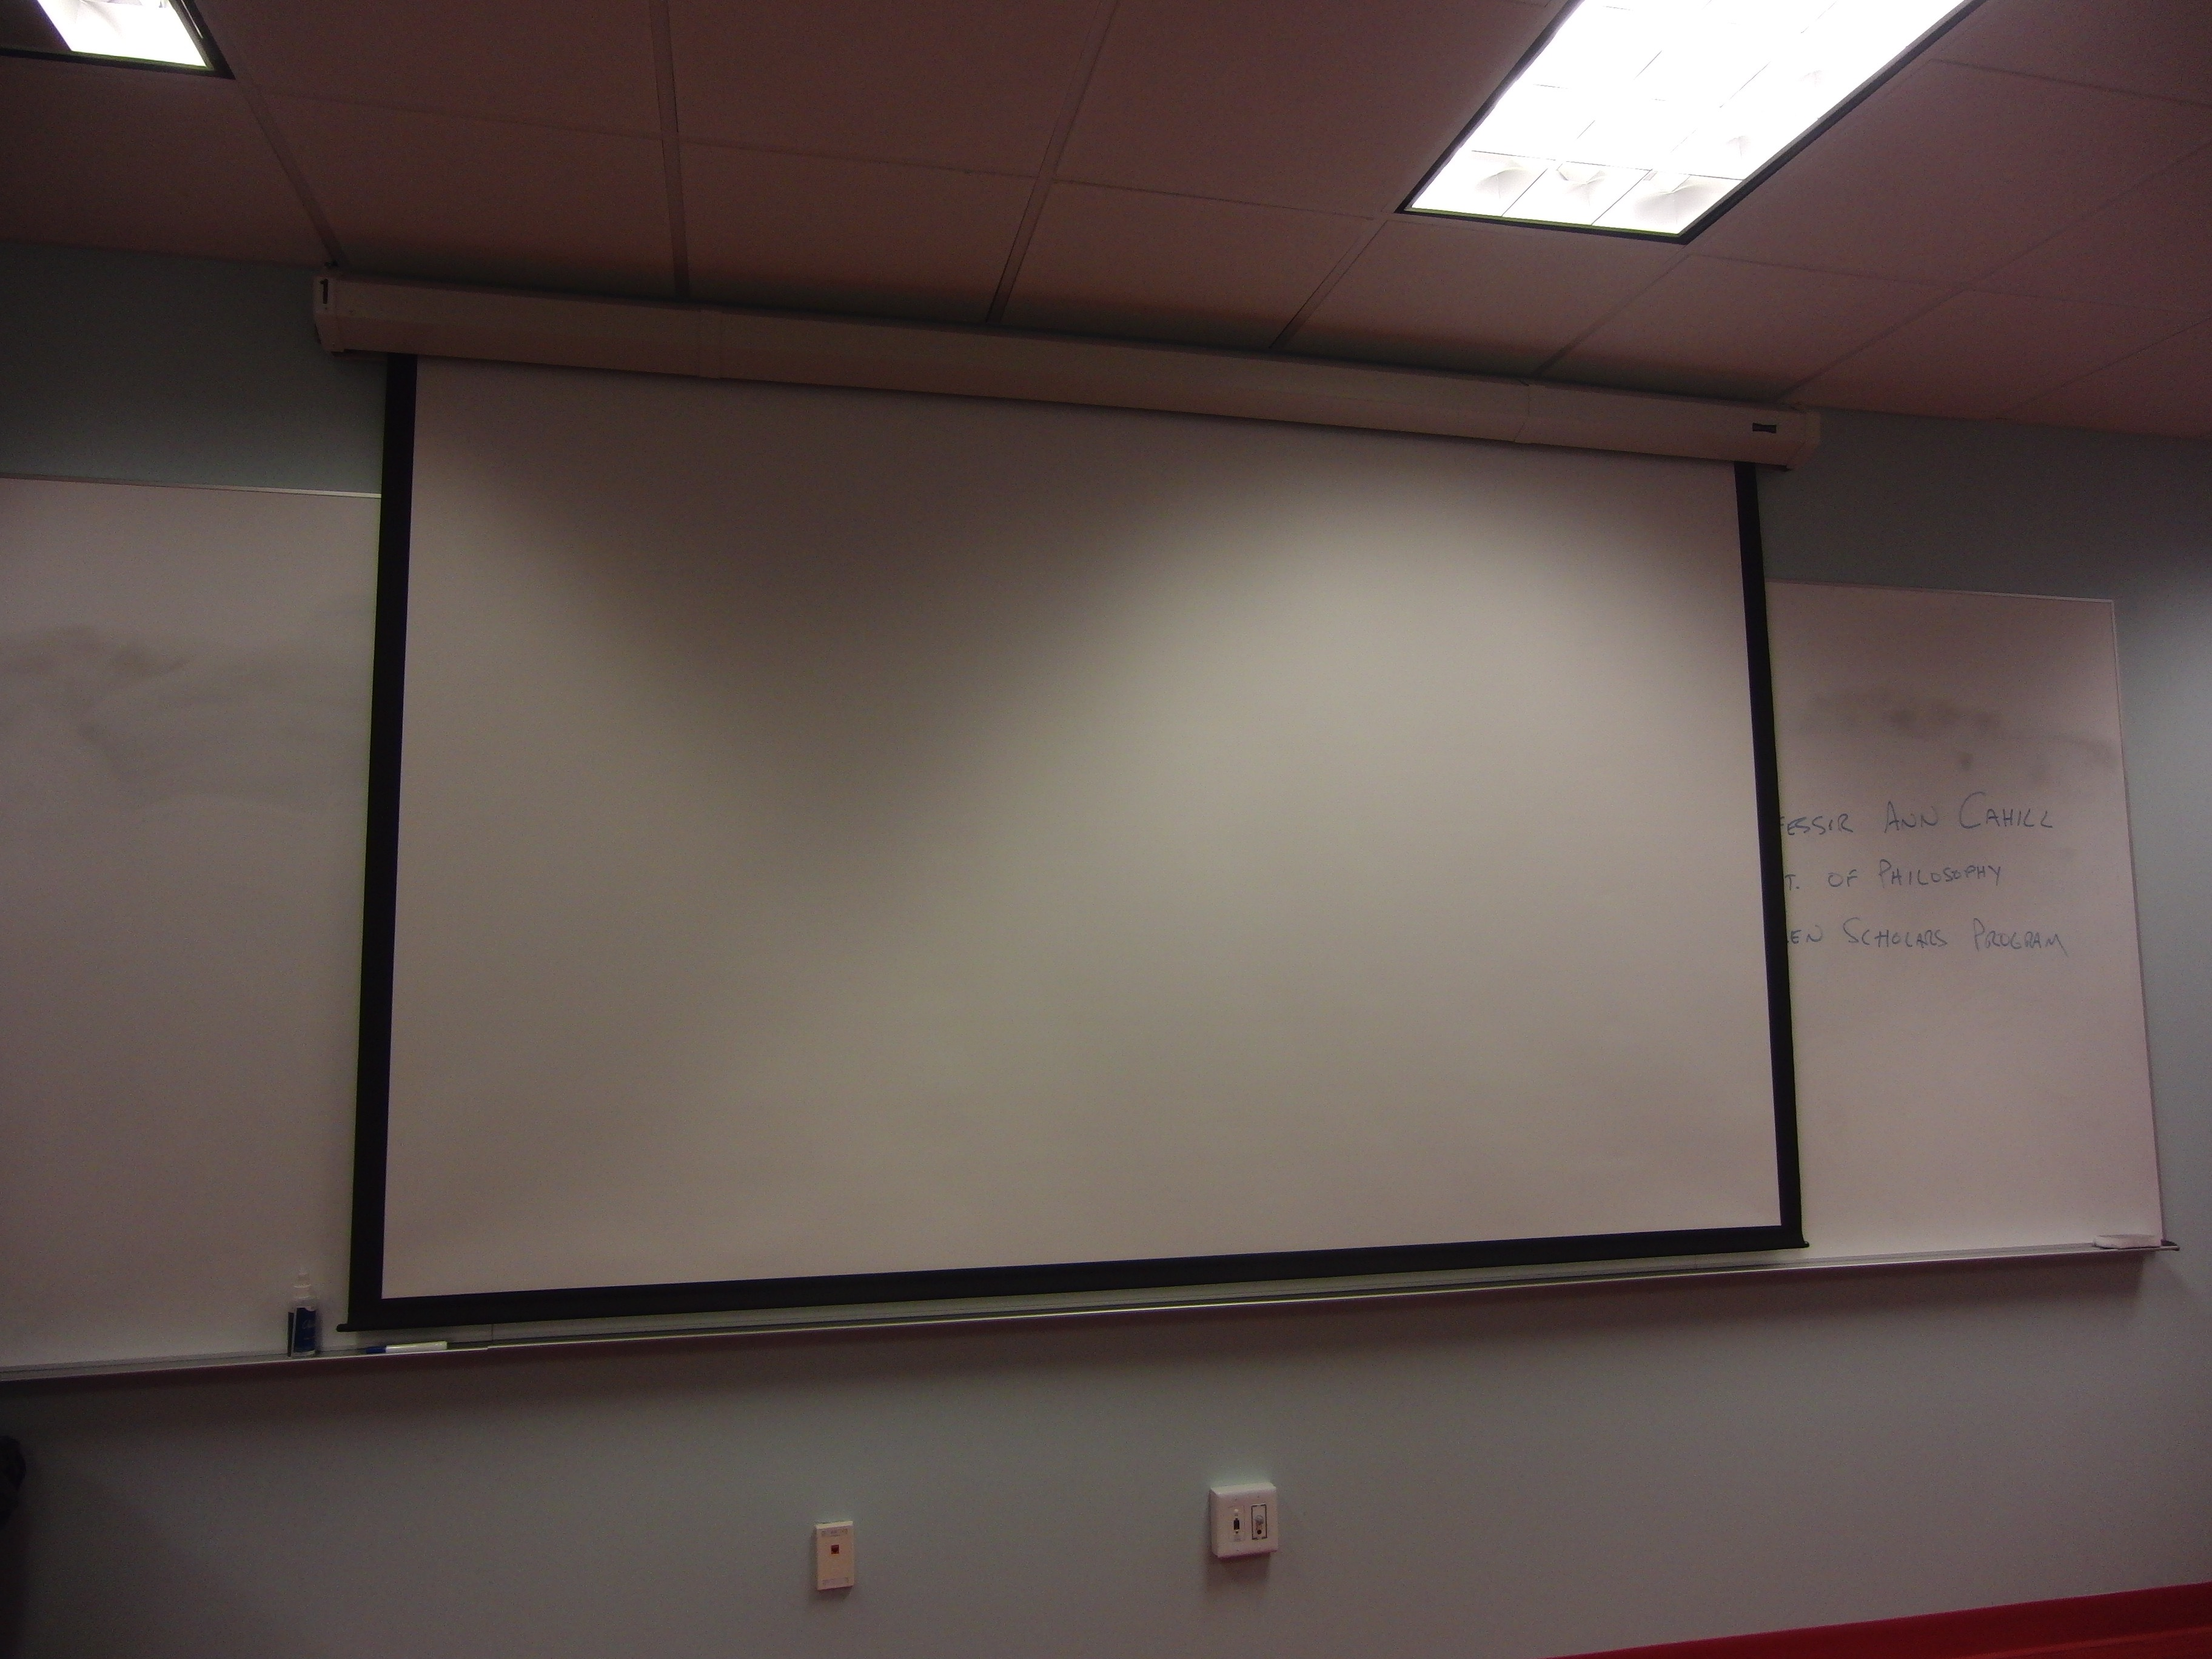 Photo of the front projection screen lowered